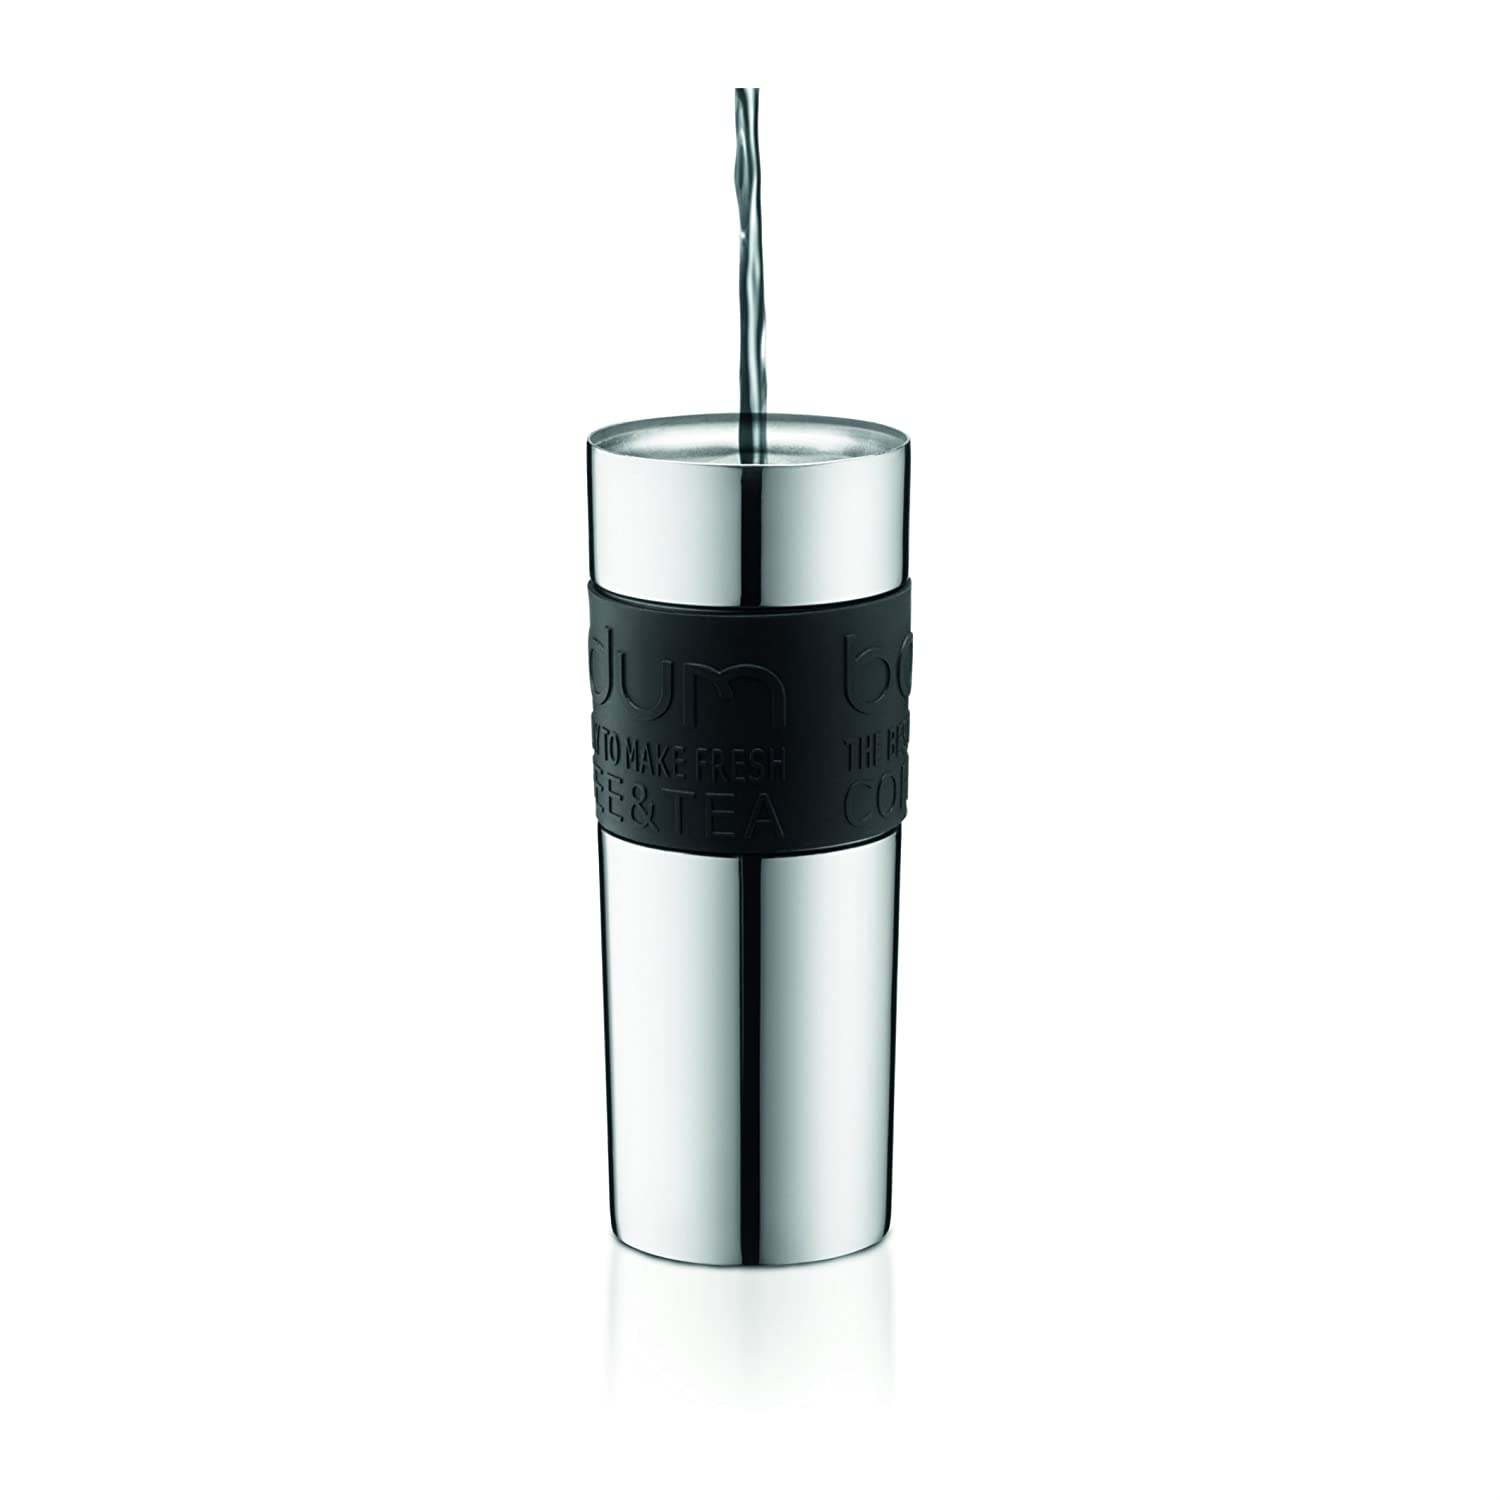 15 Ounce Bodum Travel Press Coffee and Tea Press Stainless Steel Insulated Travel Press Red 11057-294BUS